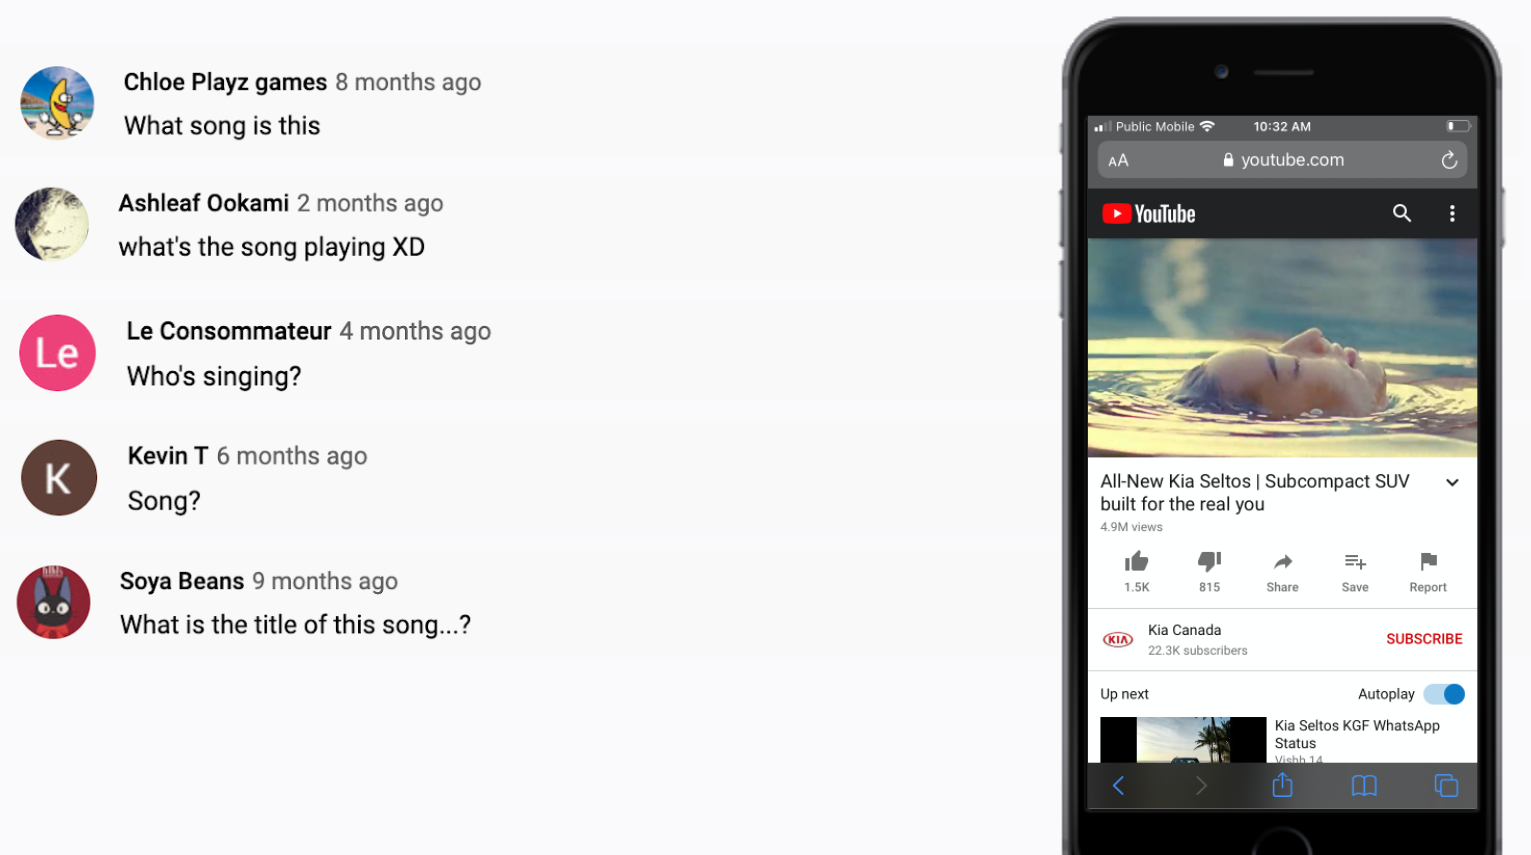 KIA - YouTube Advertisement - Billie Eilish - VIewers asking about the track used in the video